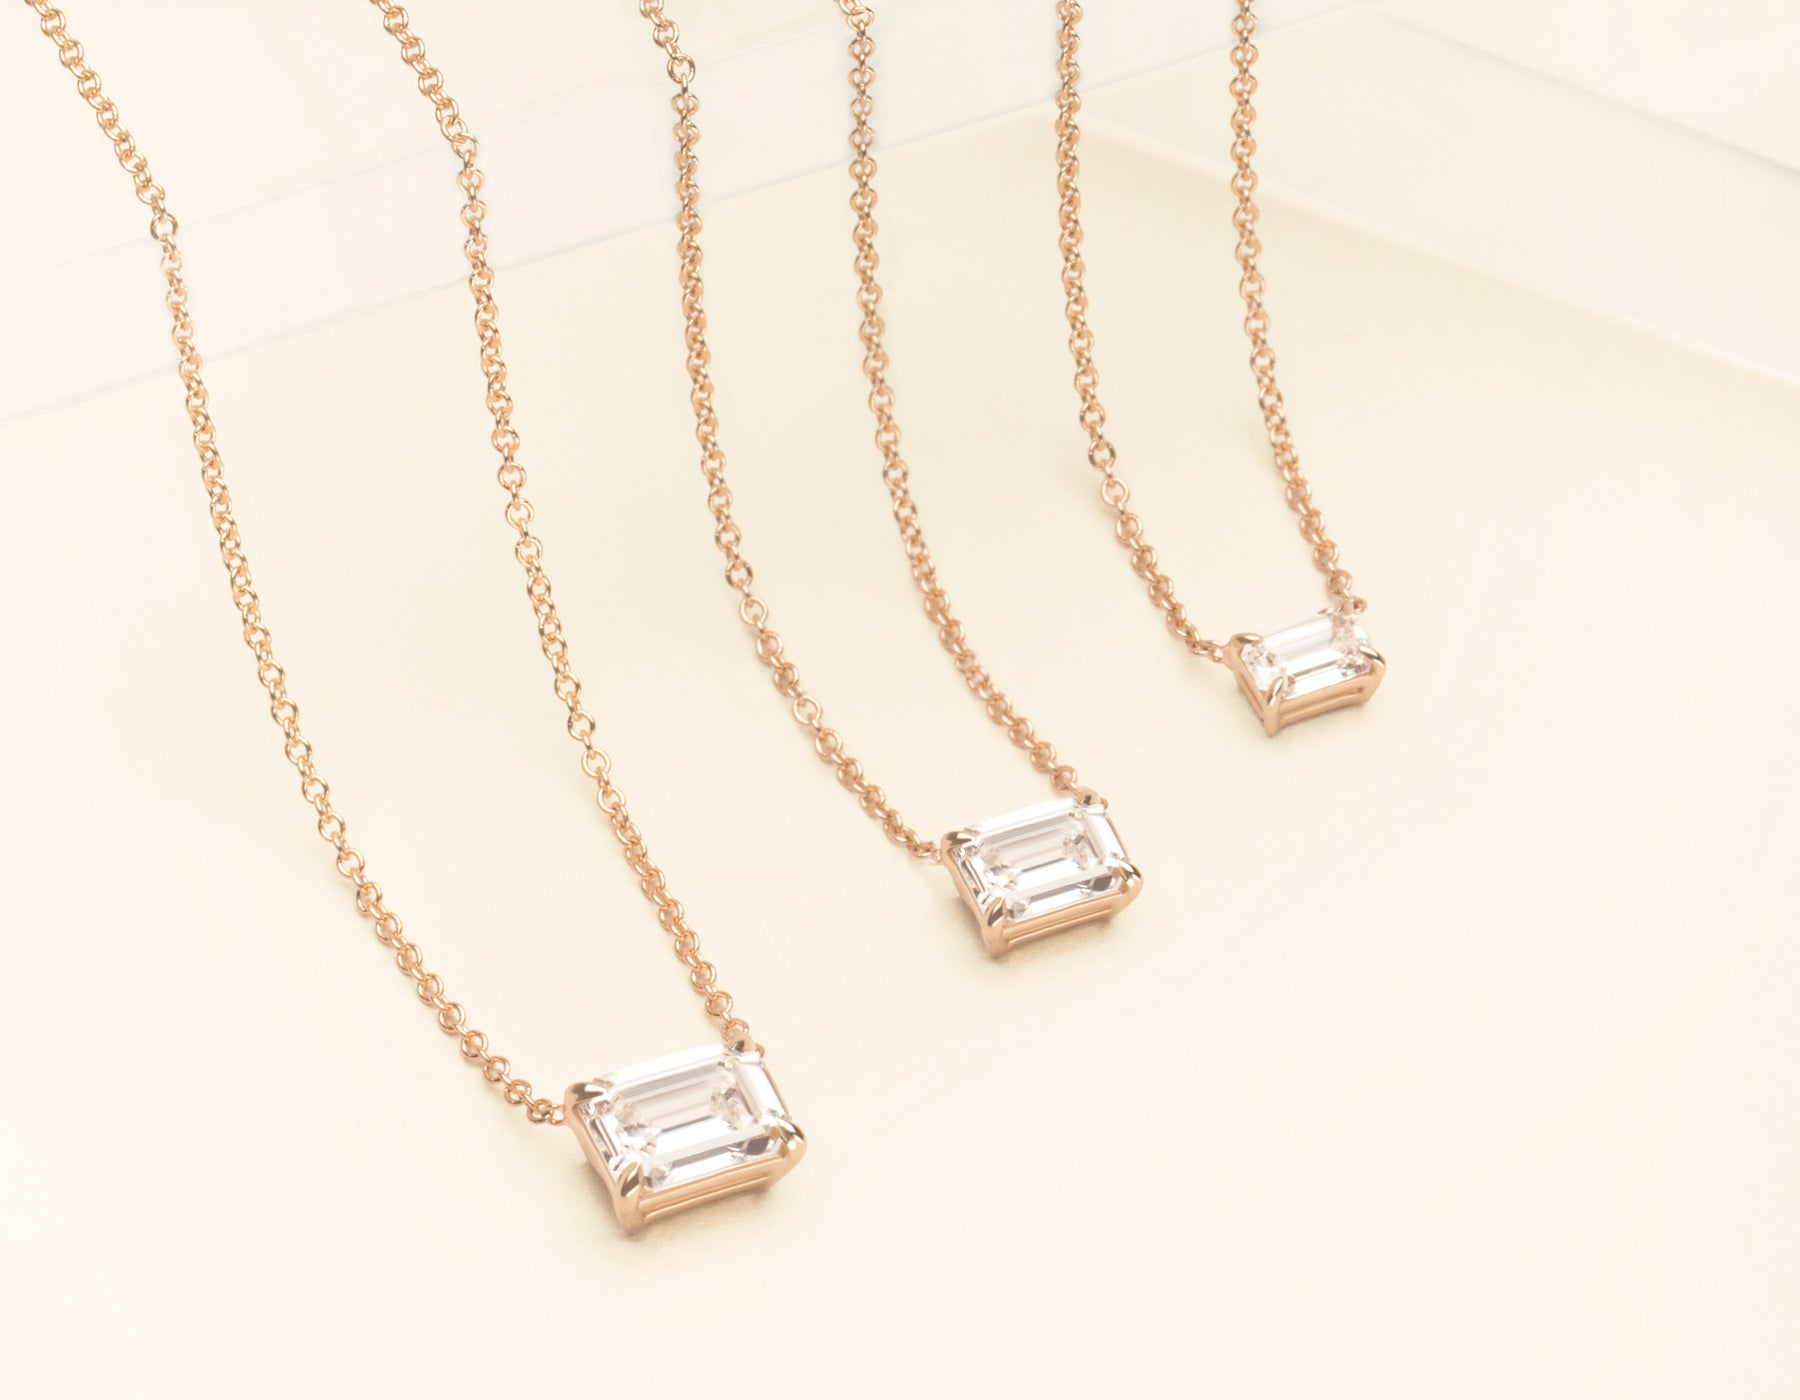 18K Solid Rose Gold Emerald Diamond Necklace on thing chain with .25 carat Half Carat or 1 Carat Diamond, 18K Rose Gold